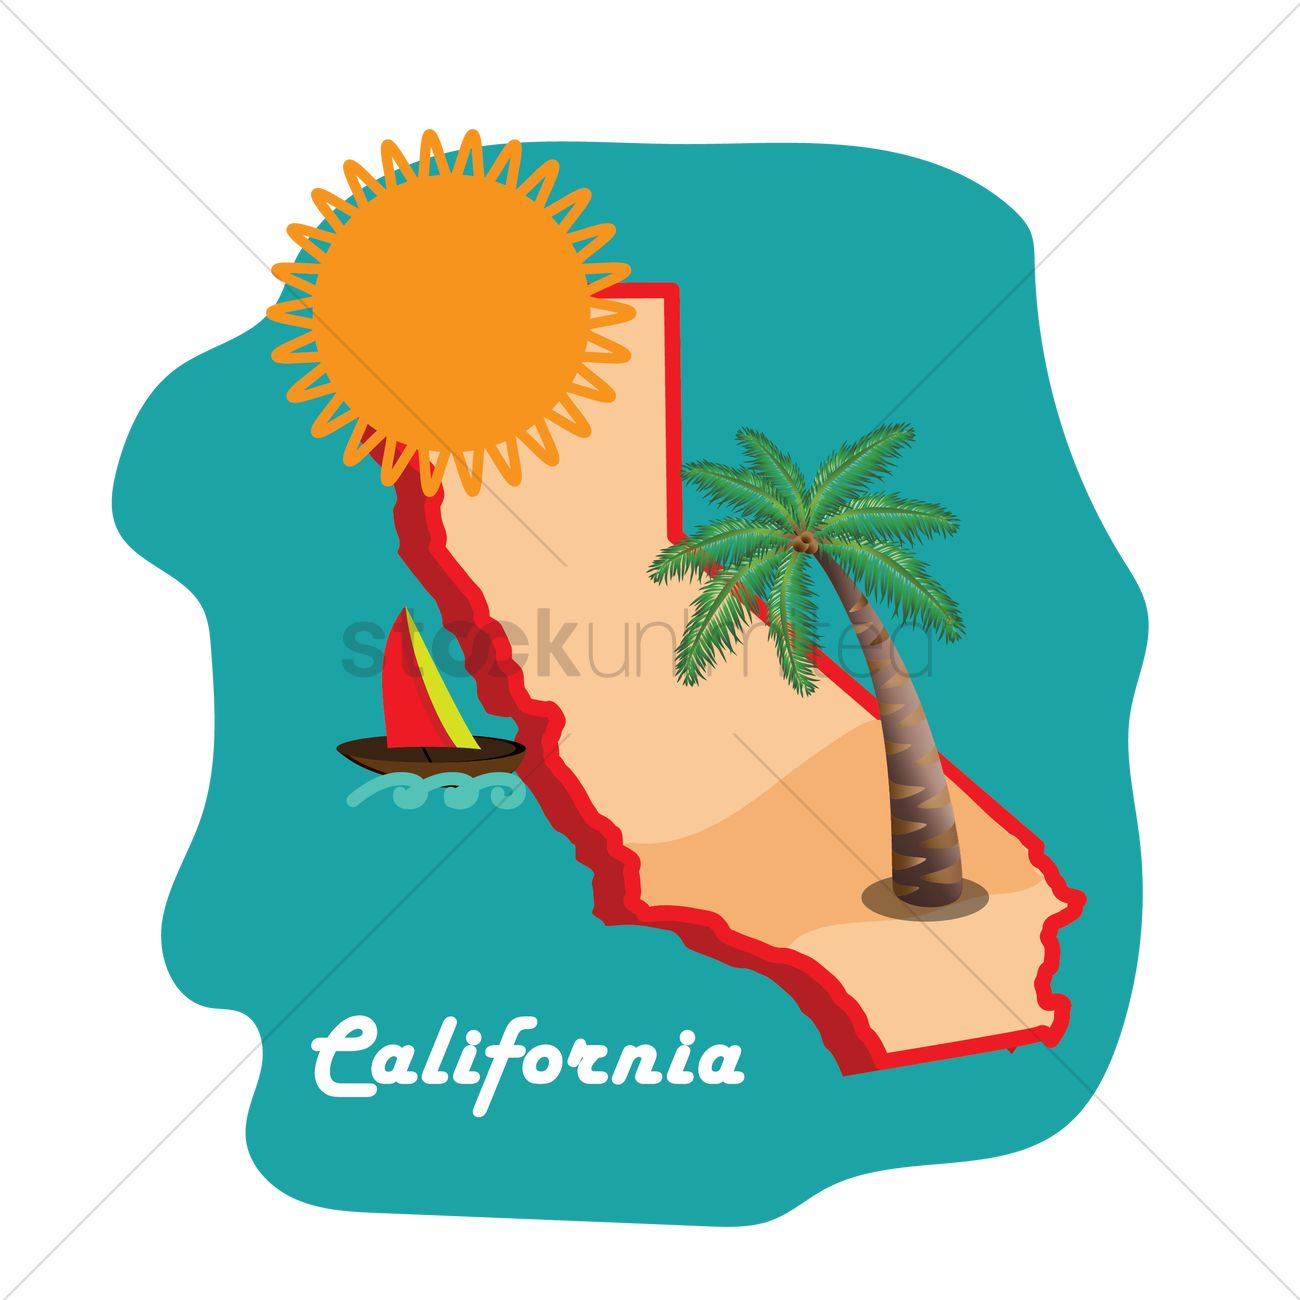 California Map Cartoon.California State Map With Long Beach Vector Image 1591347